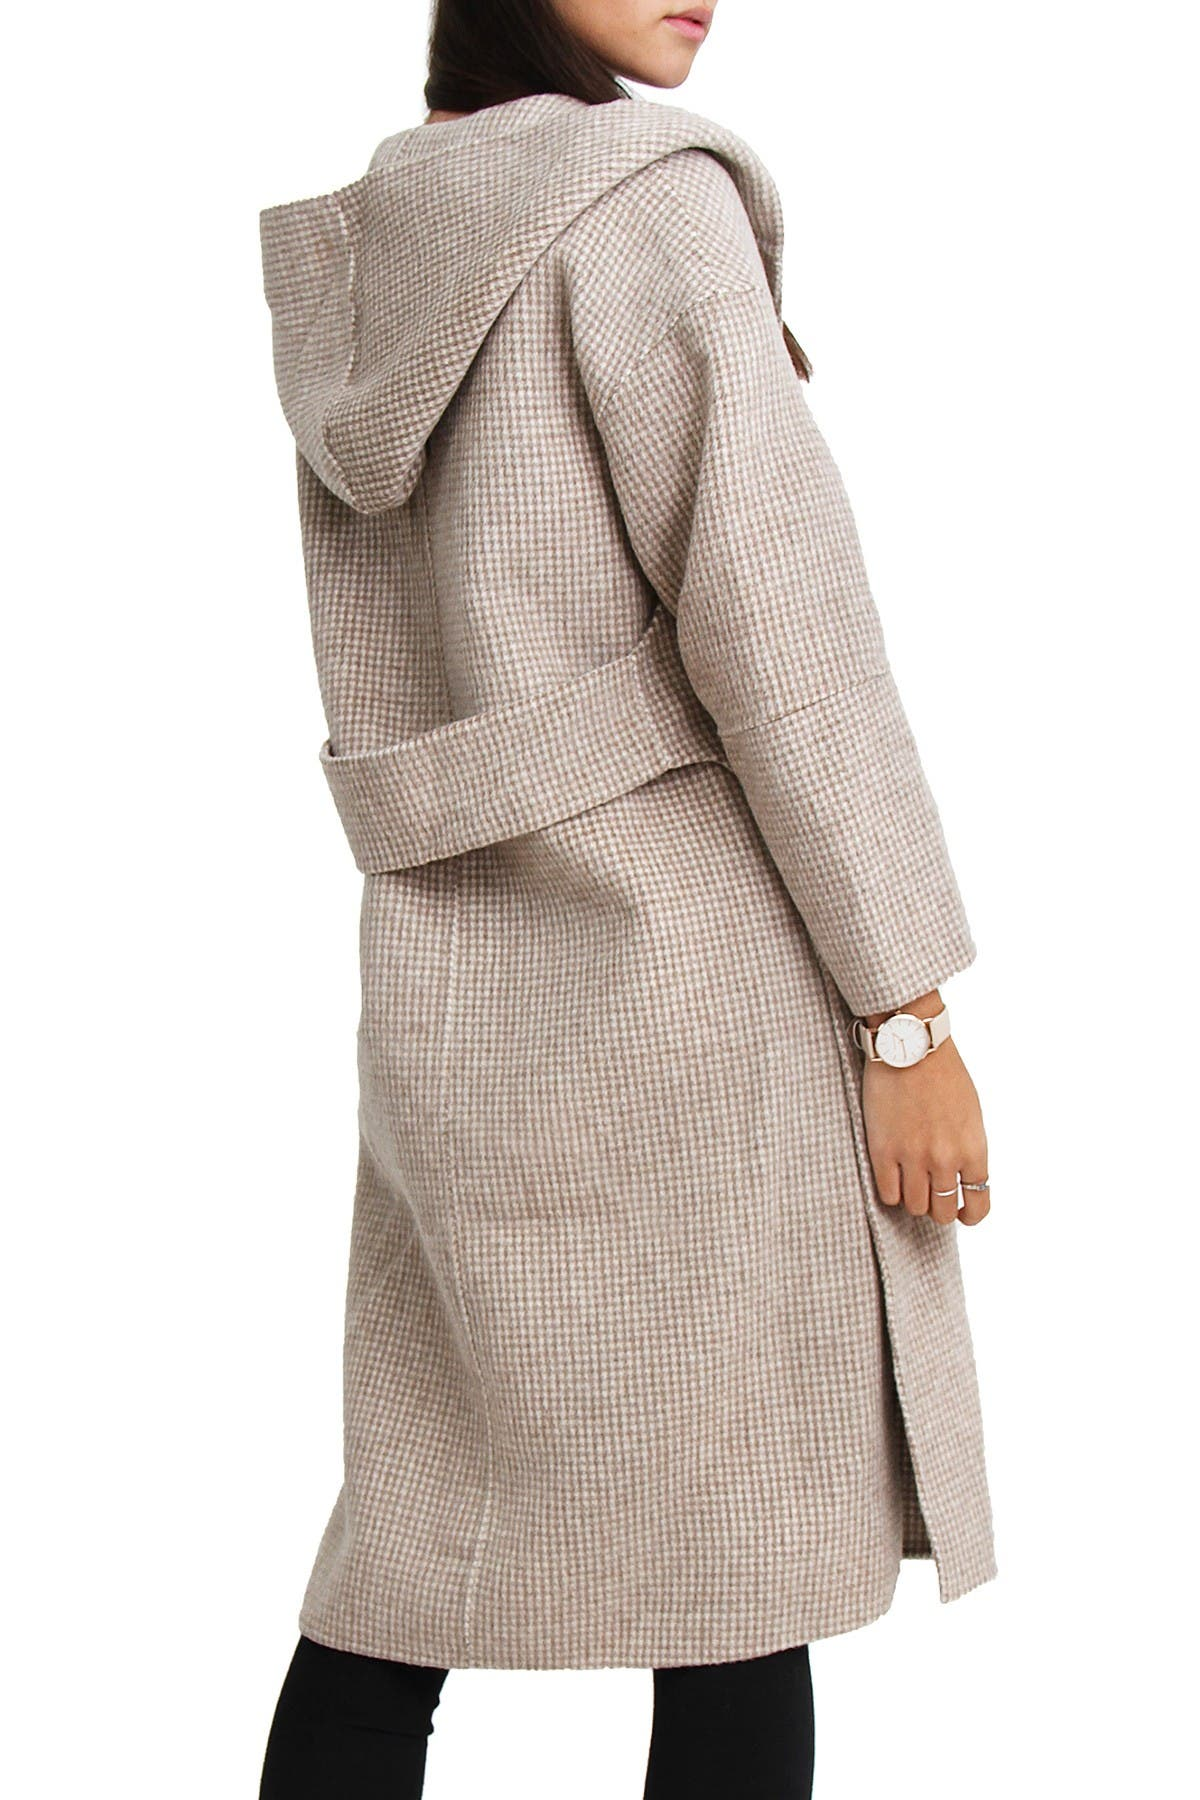 Image of Belle & Bloom Walk This Way Wool Blend Oversized Coat